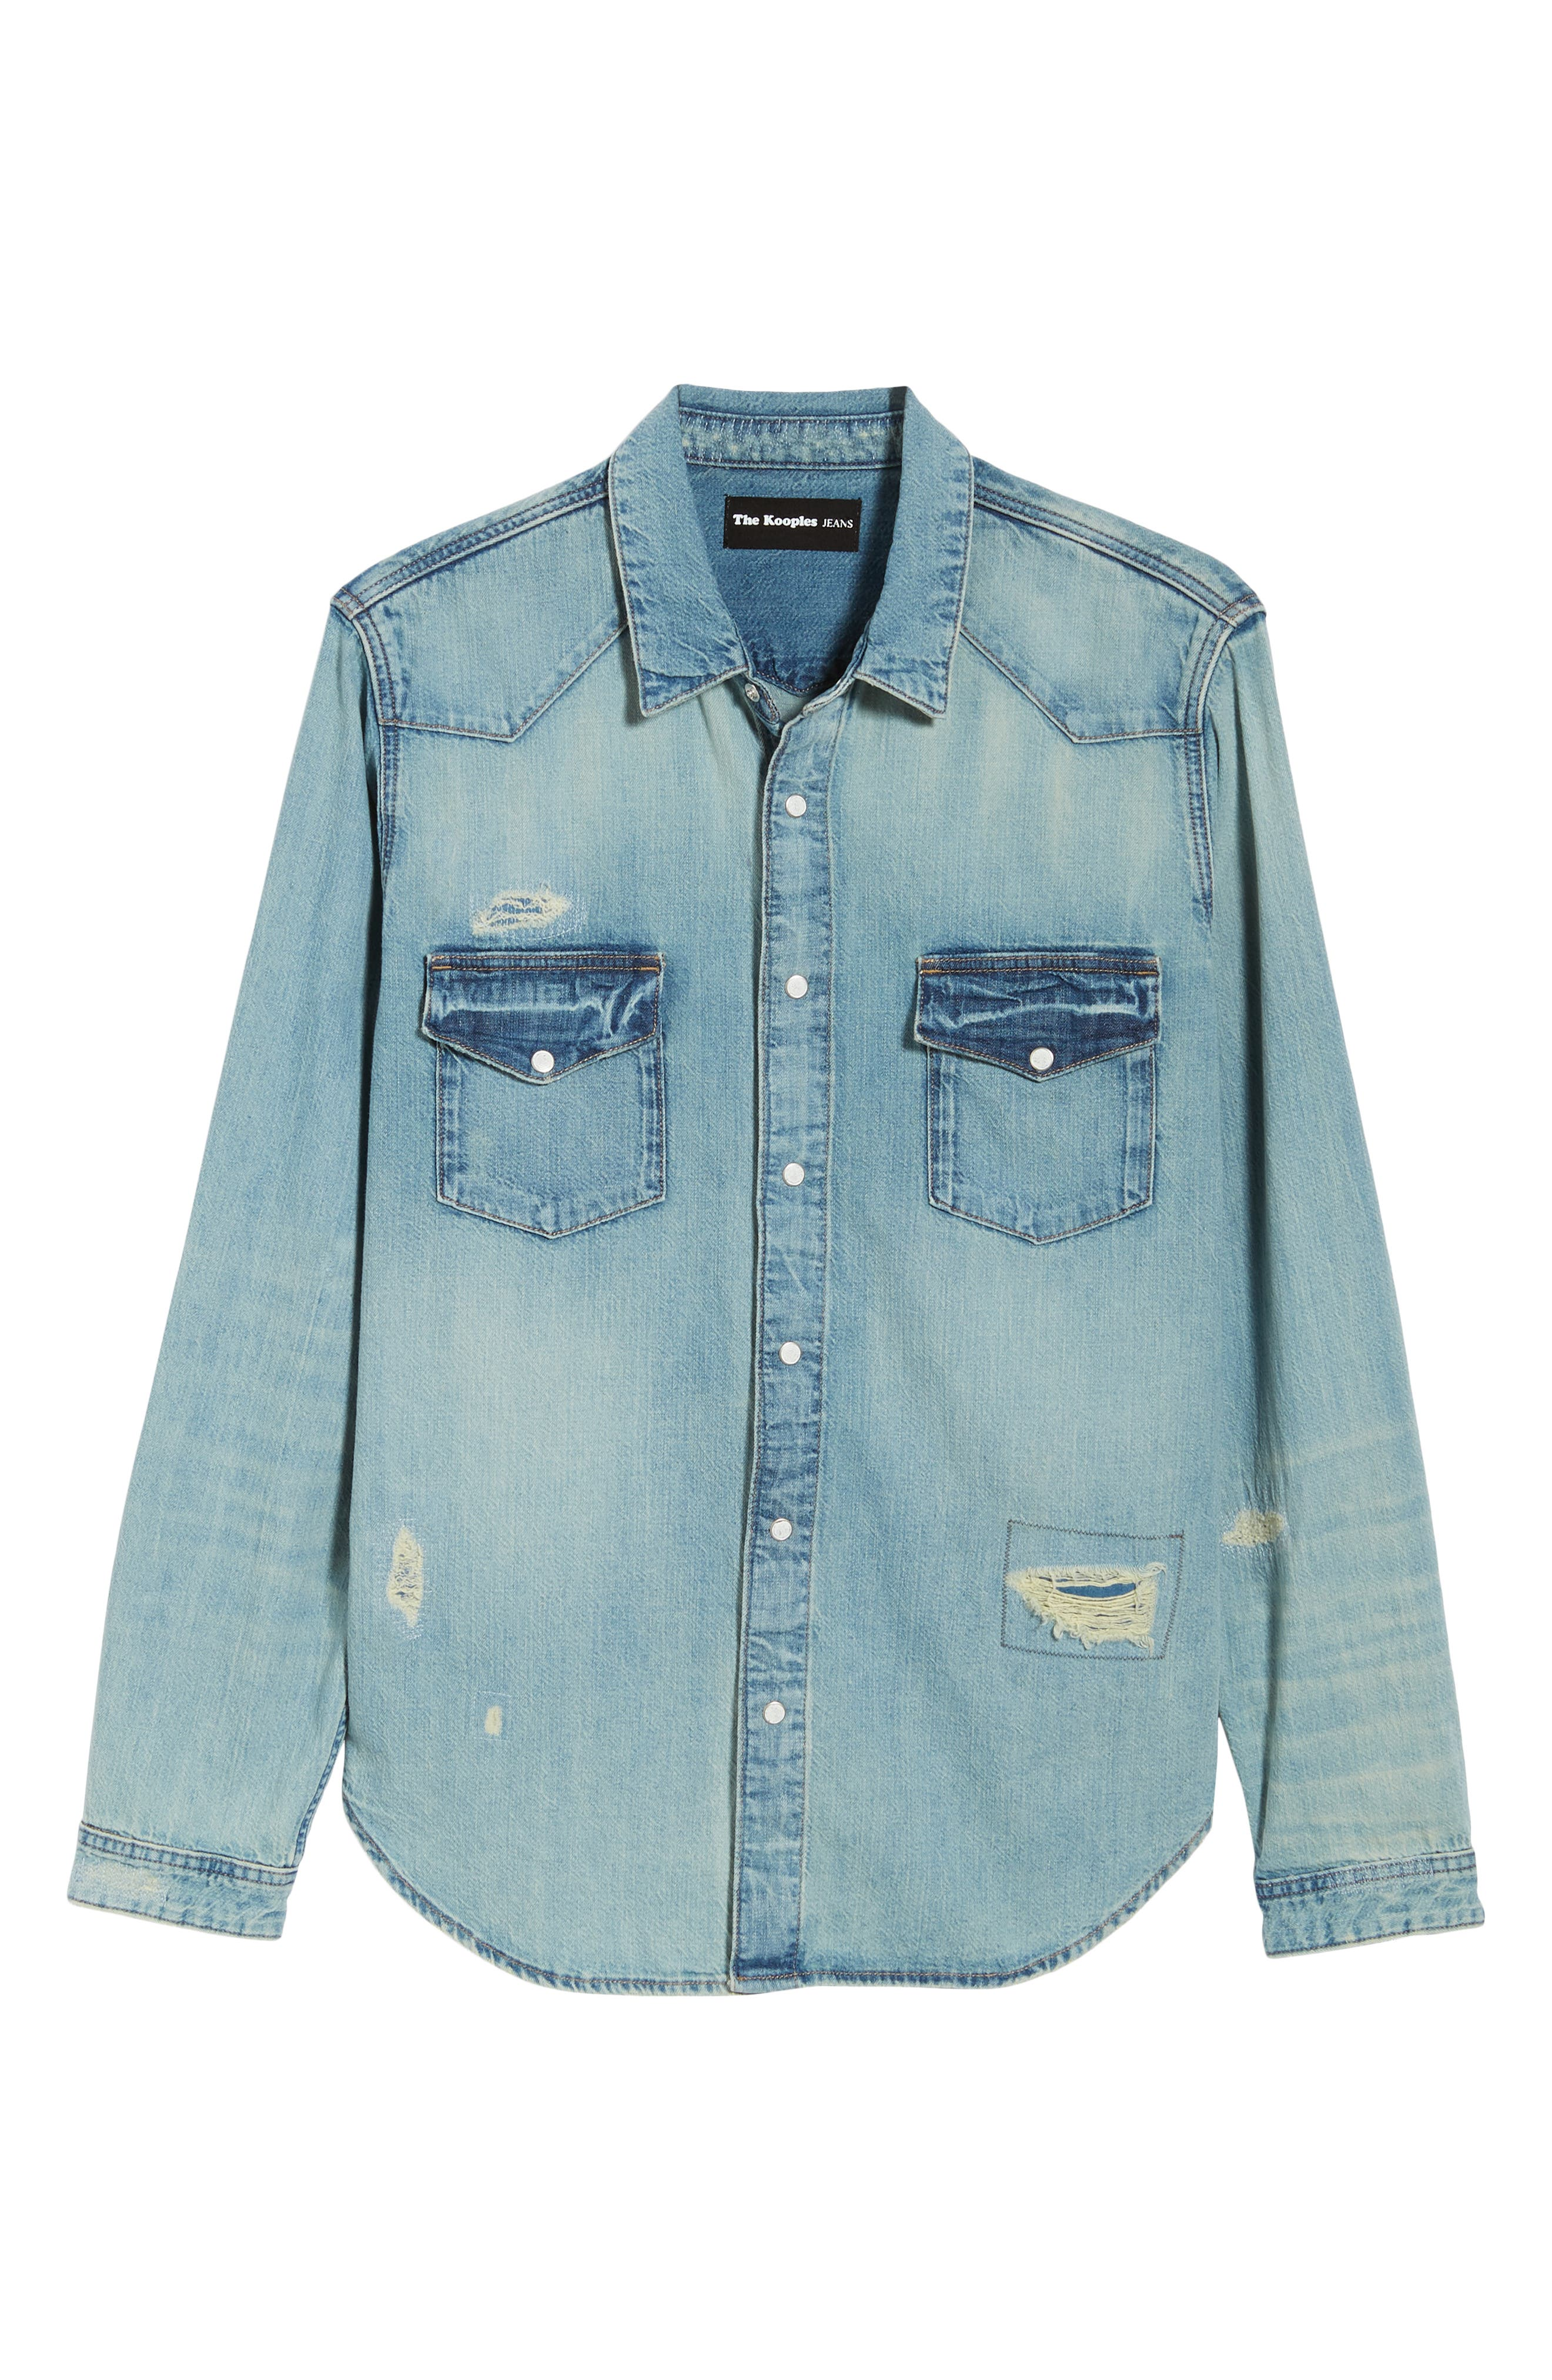 Western Denim Sport Shirt,                             Alternate thumbnail 5, color,                             450